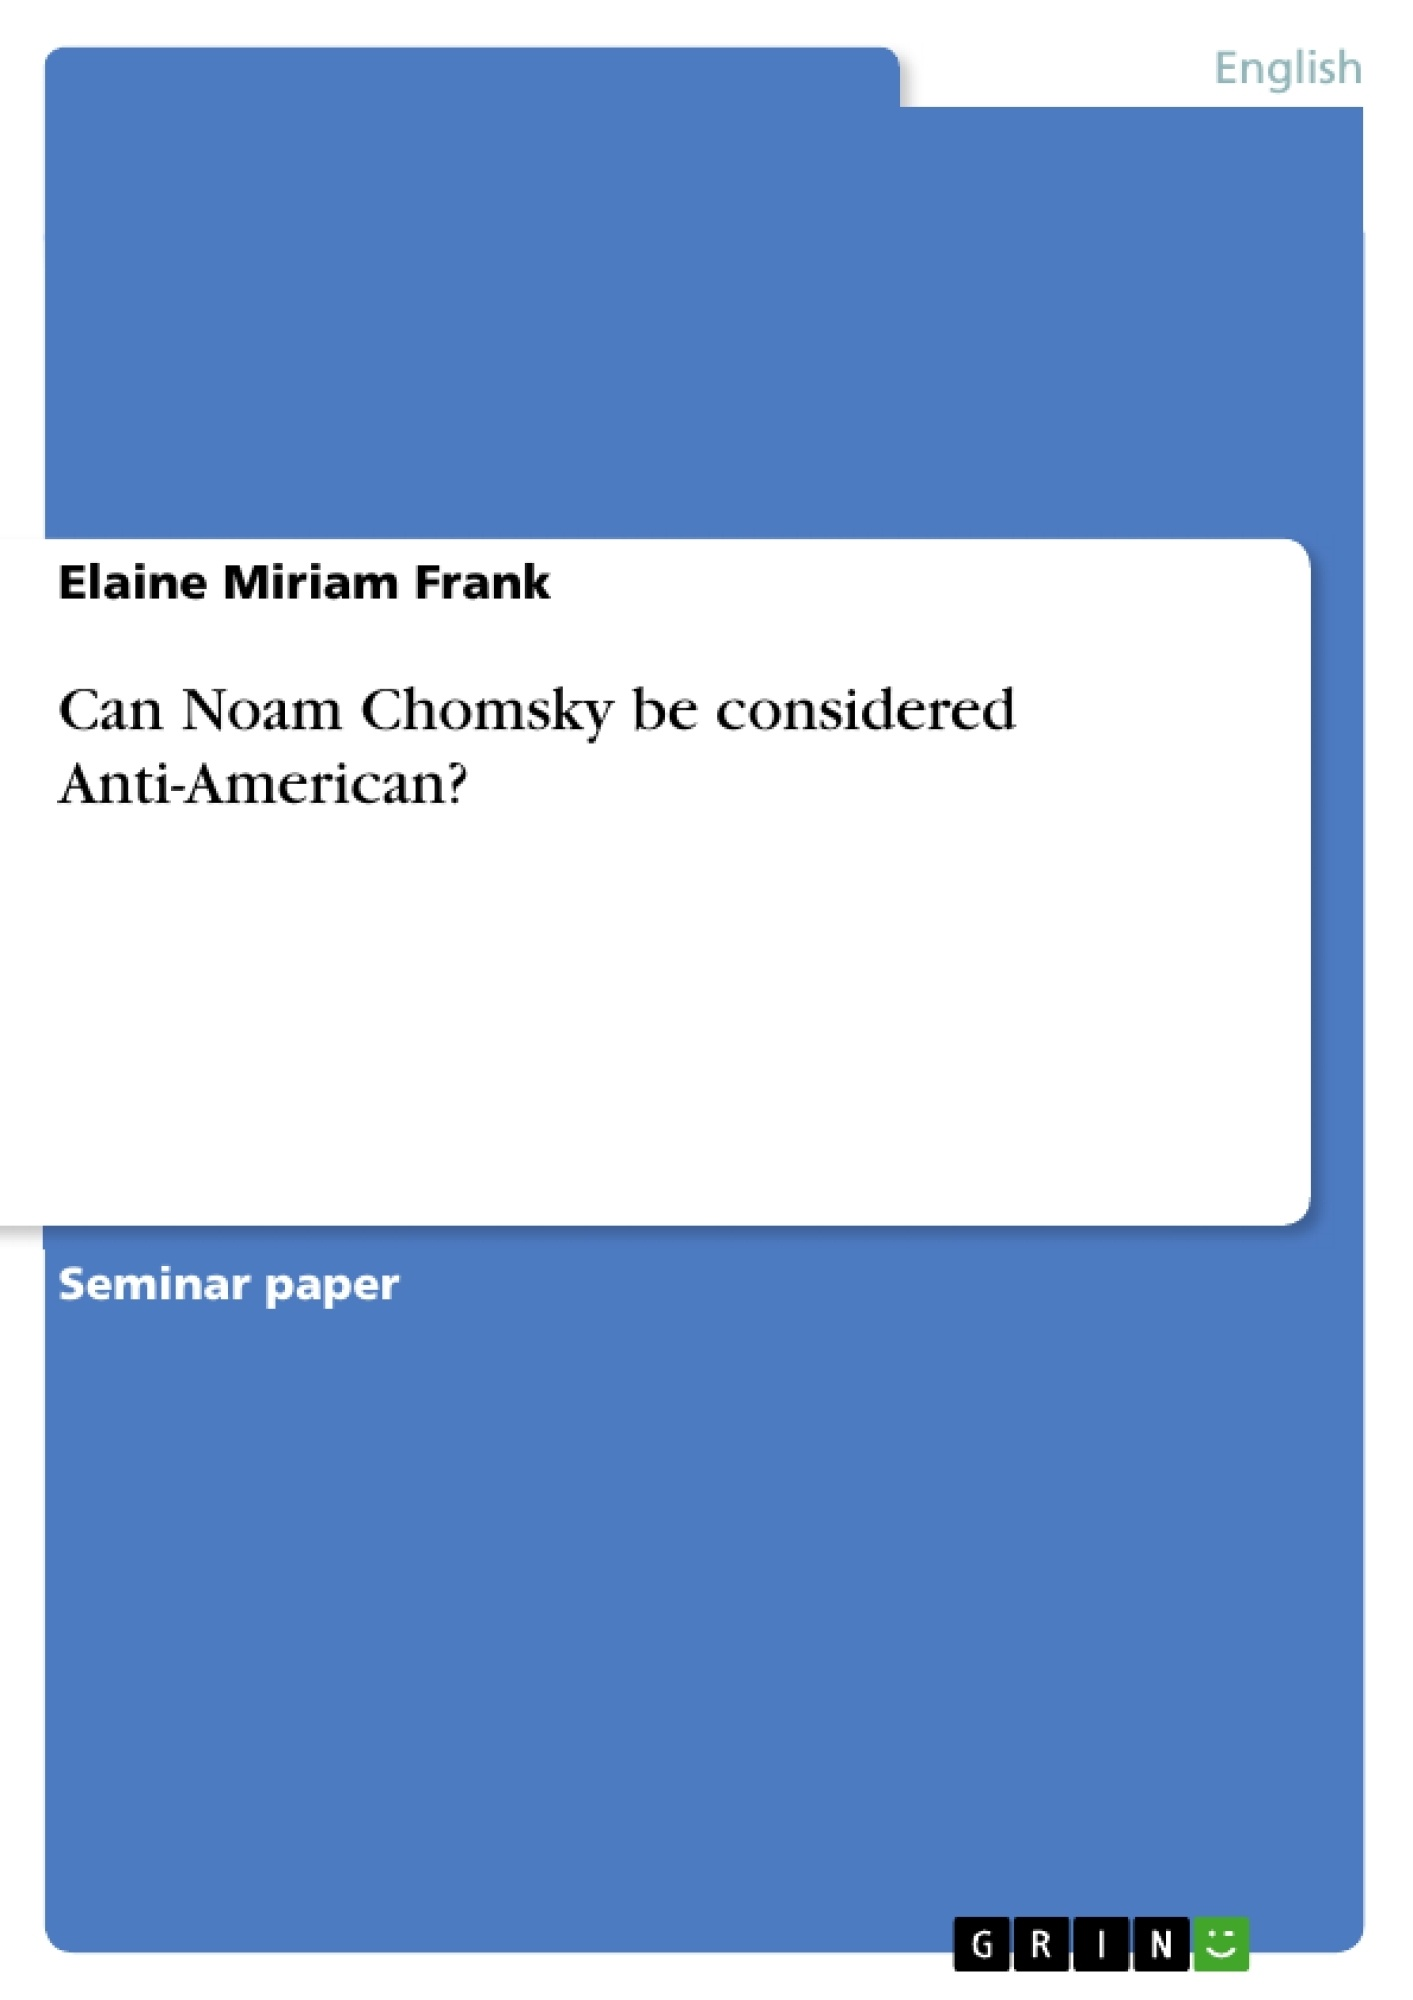 Title: Can Noam Chomsky be considered Anti-American?